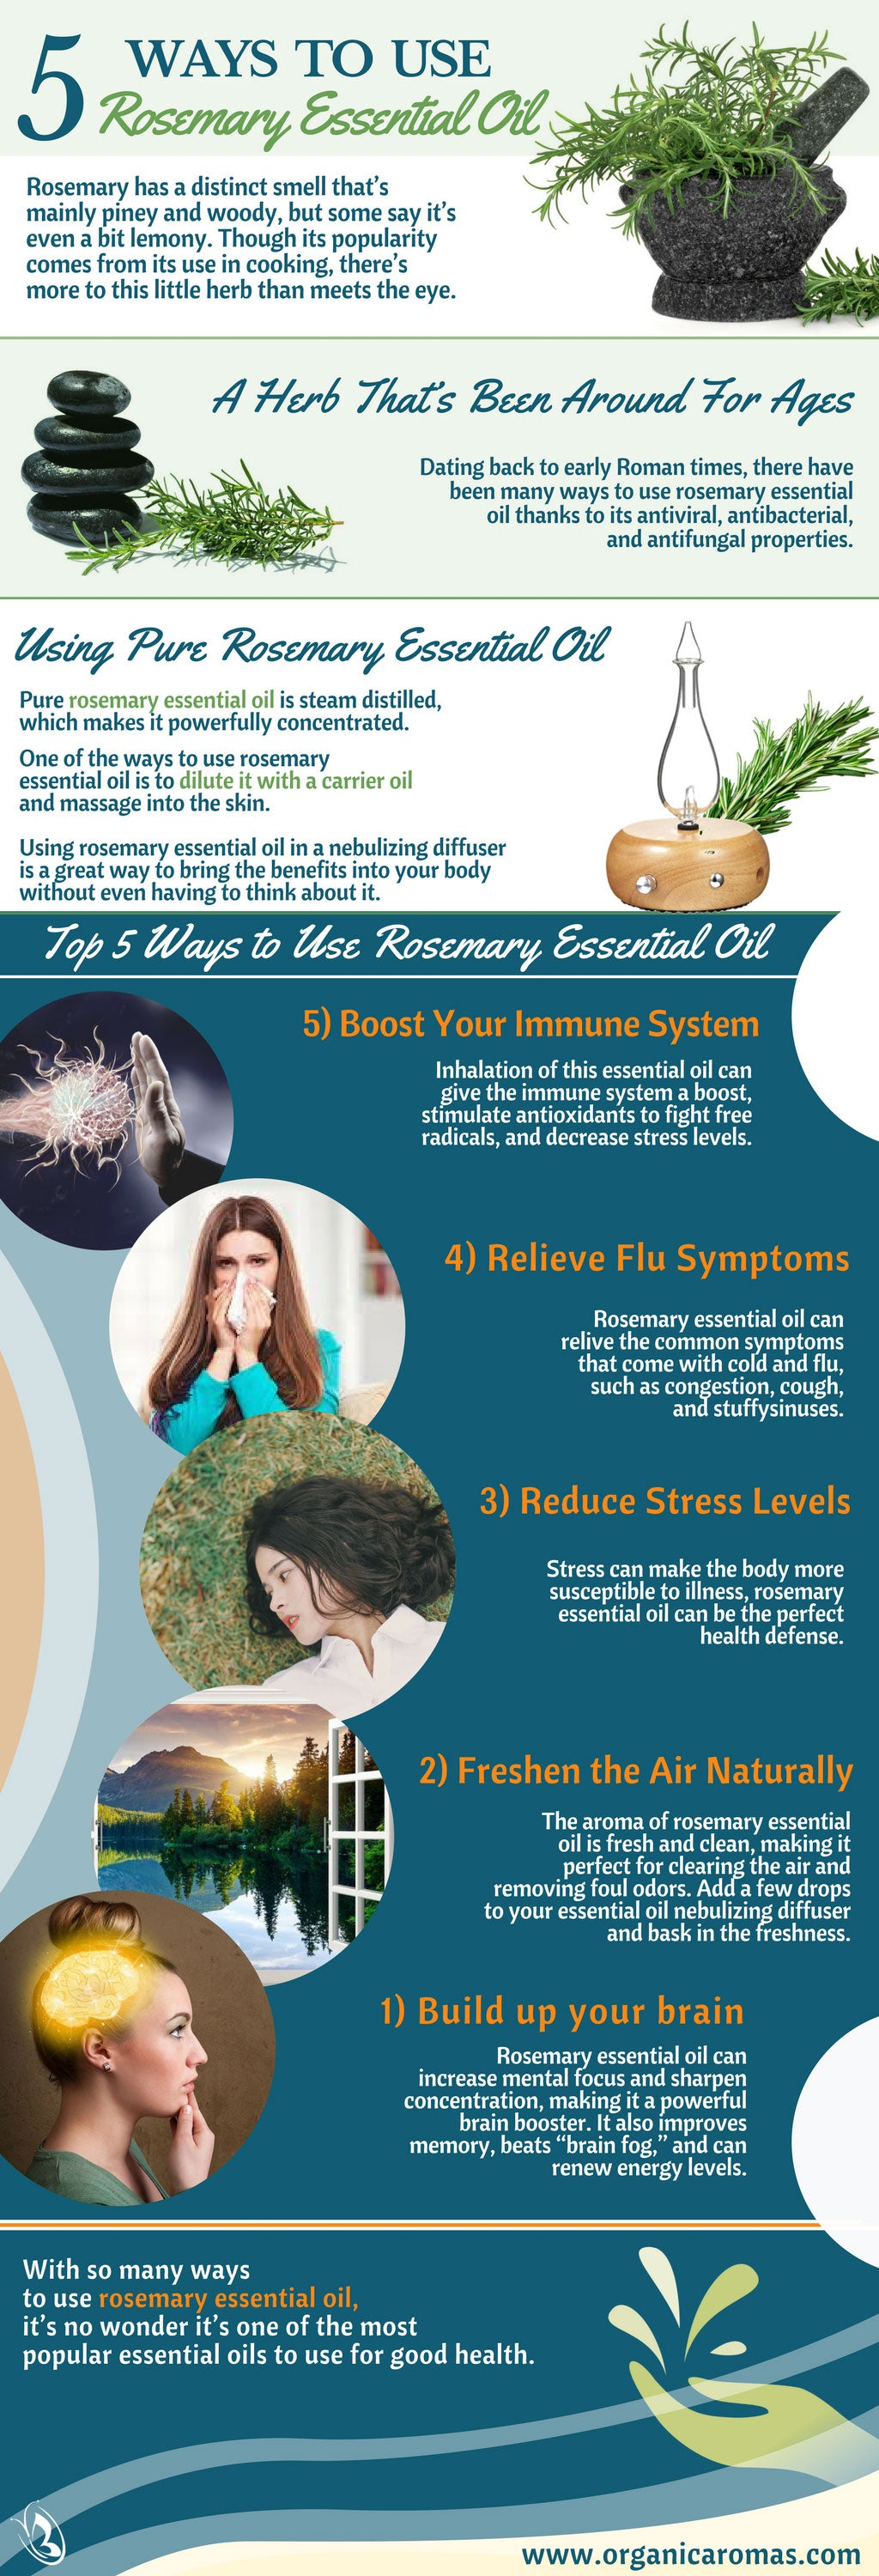 Top 5 Ways to Use Rosemary Essential Oil